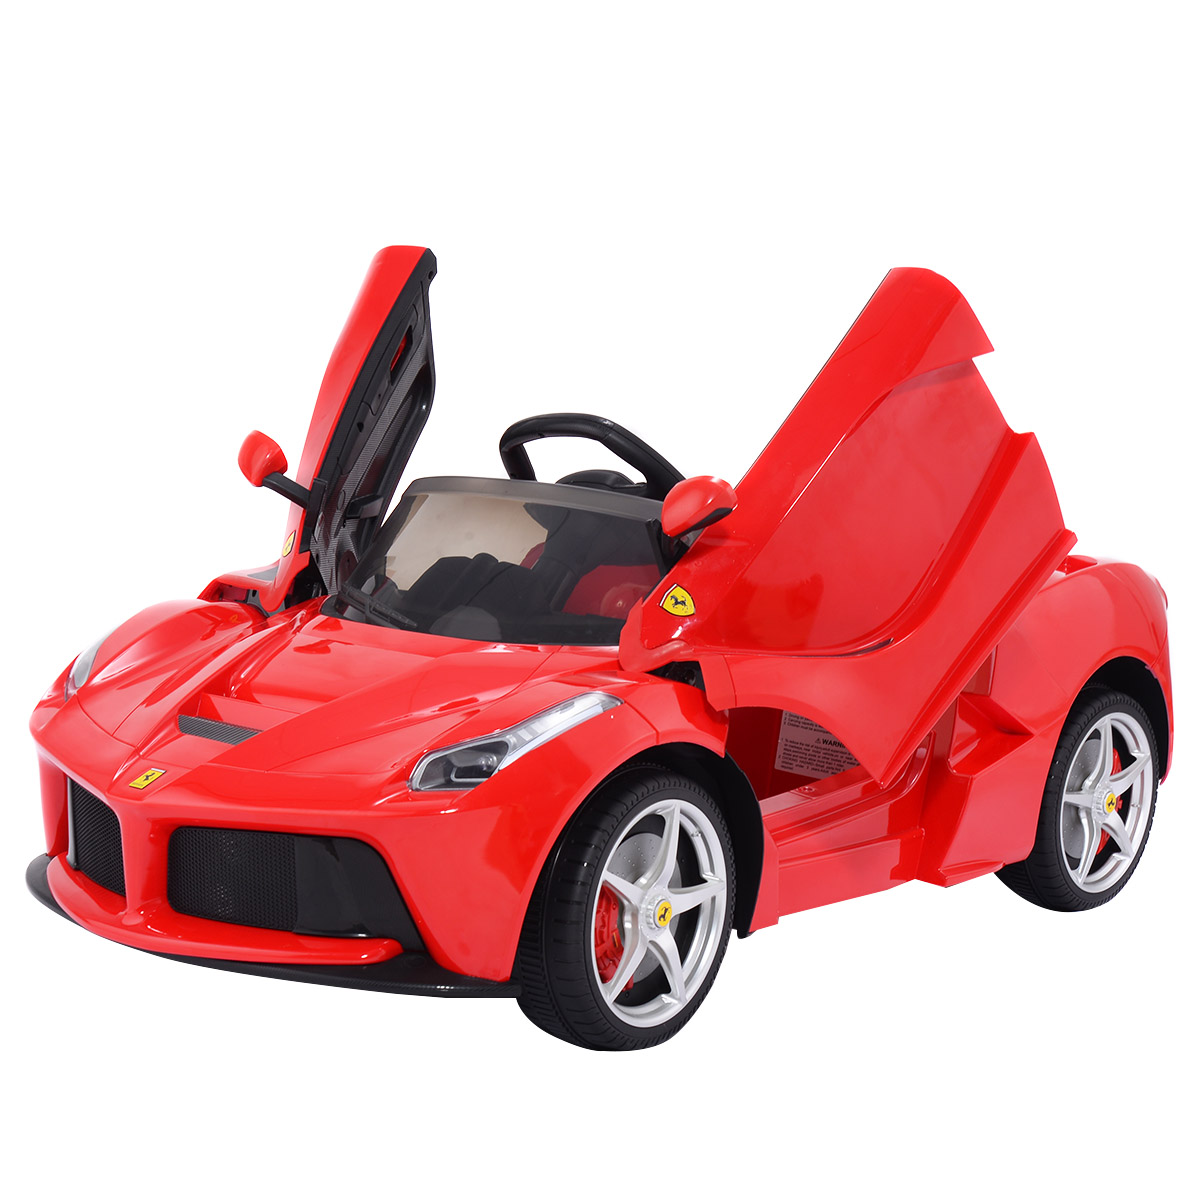 Costway 12V LaFerrari Kids Ride On Car Battery Powered RC Remote Control MP3 LED Lights by Costway